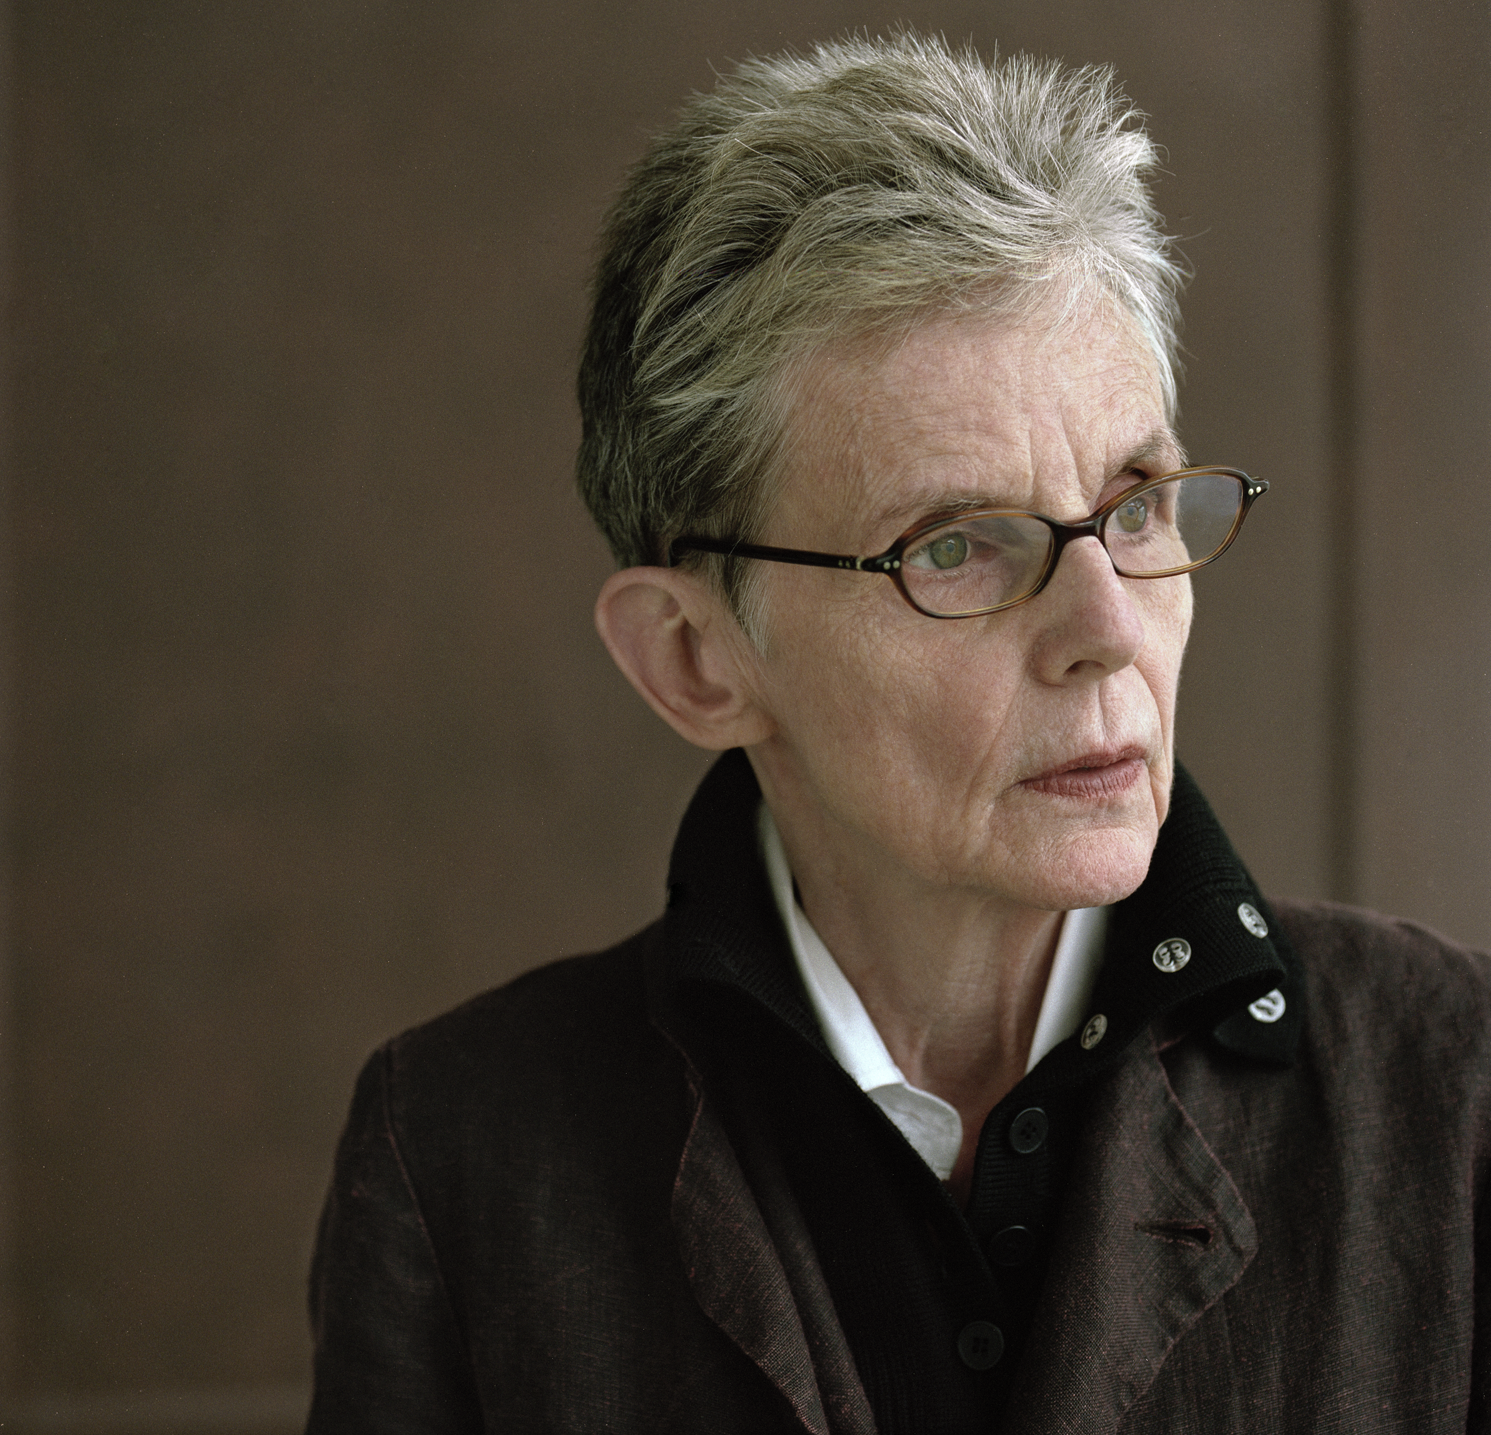 Winner of the 2018 International Griffin Poetry Prize, and author of more than a dozen books of poetry and two of literary criticism, Susan Howe's recent collection of poems That This won the Bollingen Prize in 2011. Howe held the Samuel P. Capen Chair in Poetry and the Humanities at the State University New York at Buffalo until her retirement in 2007. The recipient of a Guggenheim Fellowship, she was elected to the American Academy of Arts and Sciences in 1999 and served as a Chancellor to the Academy of American Poets between 2000-2006. In 2009 she was awarded a Fellowship to the American Academy at Berlin. Recently, she was an Artist In Residence at the Isabella Stewart Gardner Museum in Boston. Howe has also released three CDs in collaboration with the musician/composer David Grubbs, Thiefth, Souls of the Labadie Tract, and Frolic Architecture. In 2013 her word collages were exhibited at the Yale Union in Portland, Oregon, and in the Whitney Biennial Spring, 2014. Most recently, a limited press edition of Tom Tit Tot (word collages which amount to a series poem) with artwork by R. H. Quaytman has been published by MoMA in New York, and Spontaneous Particulars: The Telepathy of Archives by Christine Burgin and New Directions.